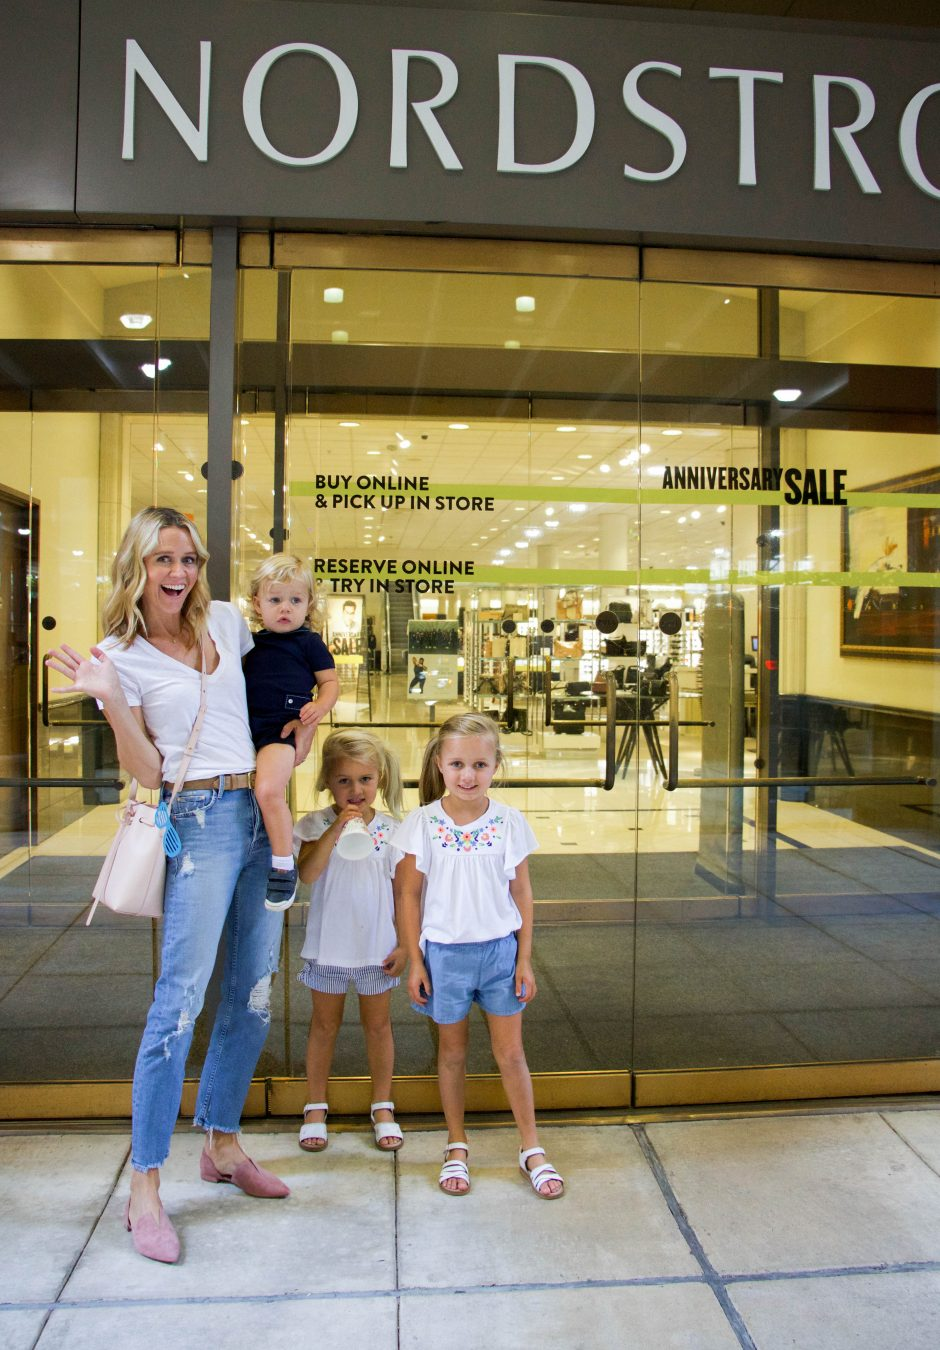 Fashion blogger Lyndsey Zorich of L. Avenue shares how quick and easy it is to shop with Nordstrom using their in-store pickup option